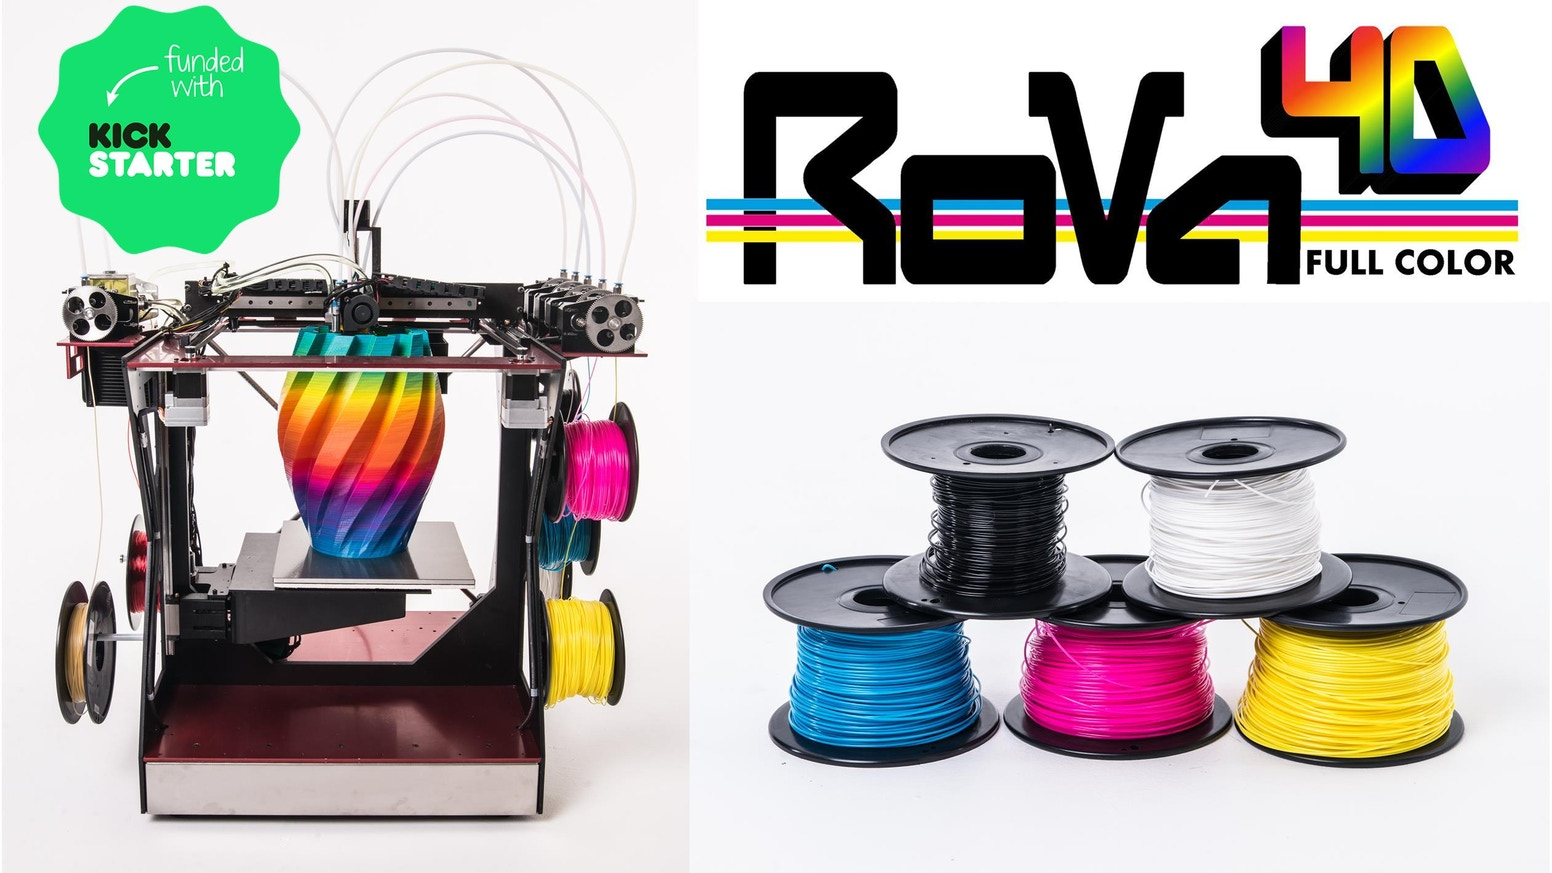 The RoVa4D Full Color Blender is the World's first affordable full color 3D printer! It is easy to use and comes ready-to-print. FOR MORE INFORMATION VISIT:WWW.ORDSOLUTIONS.COM